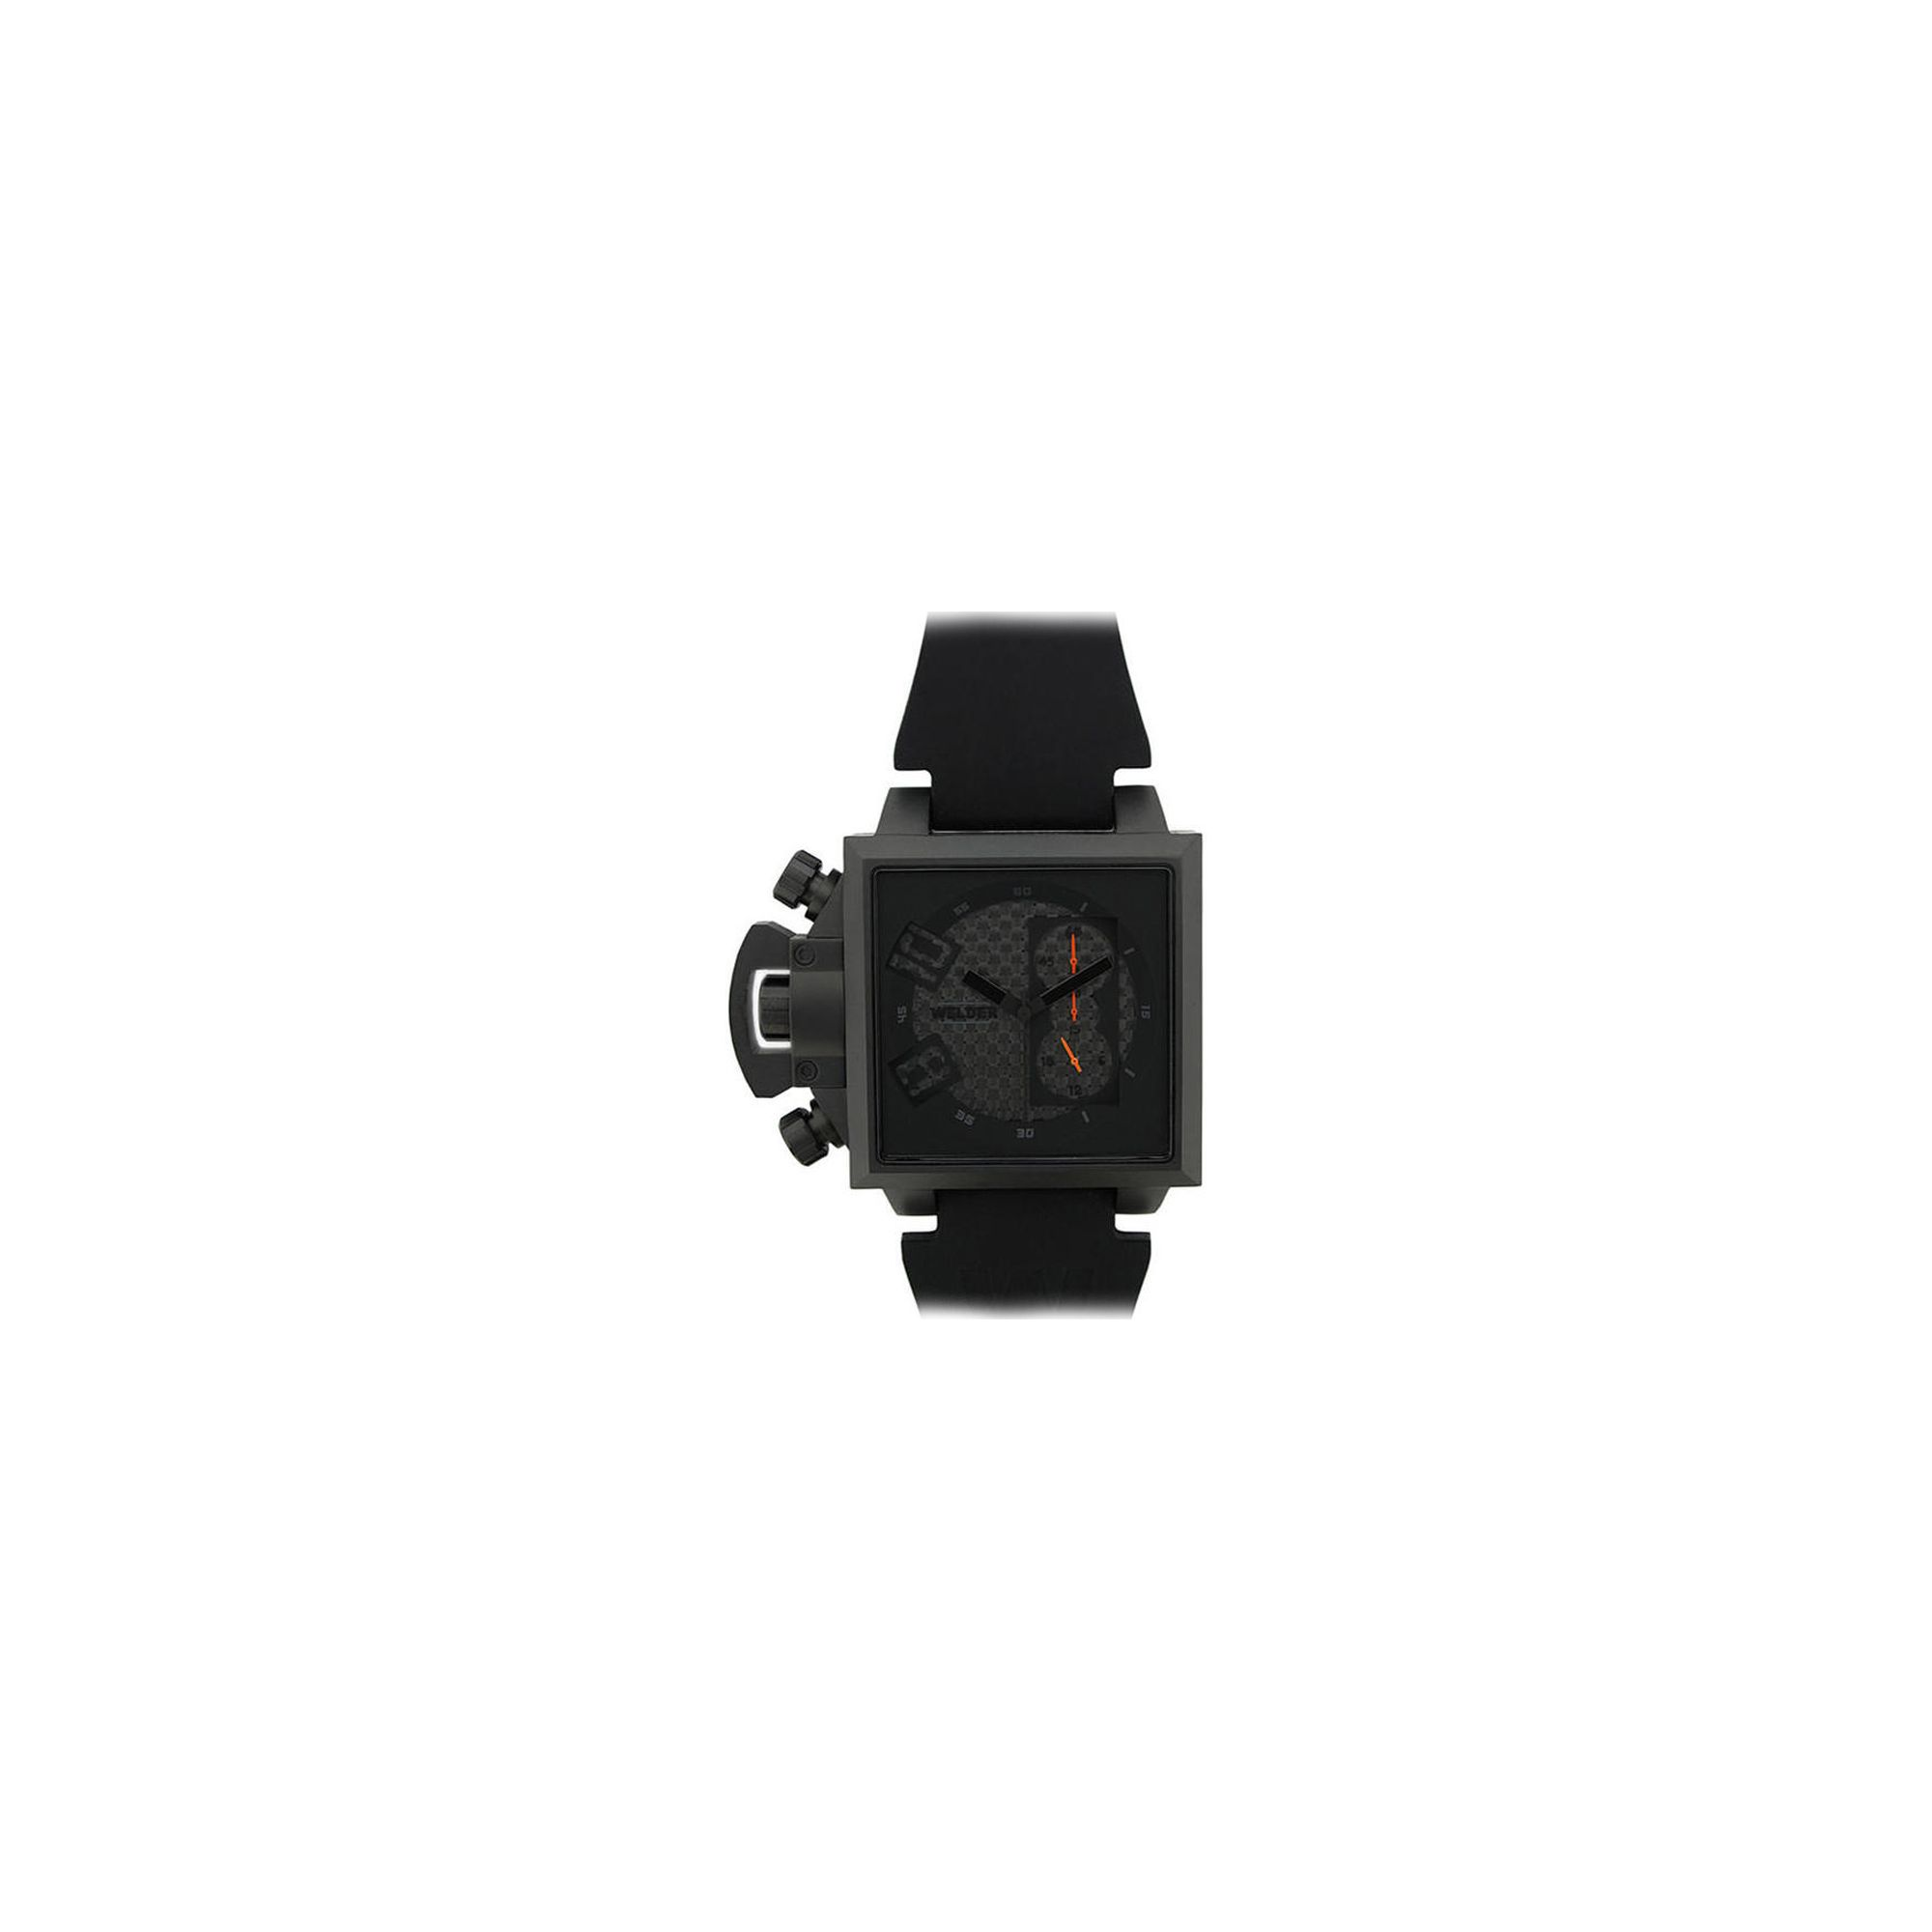 Welder Gents Black Dial Black Rubber Strap Watch K25-4704 at Tesco Direct